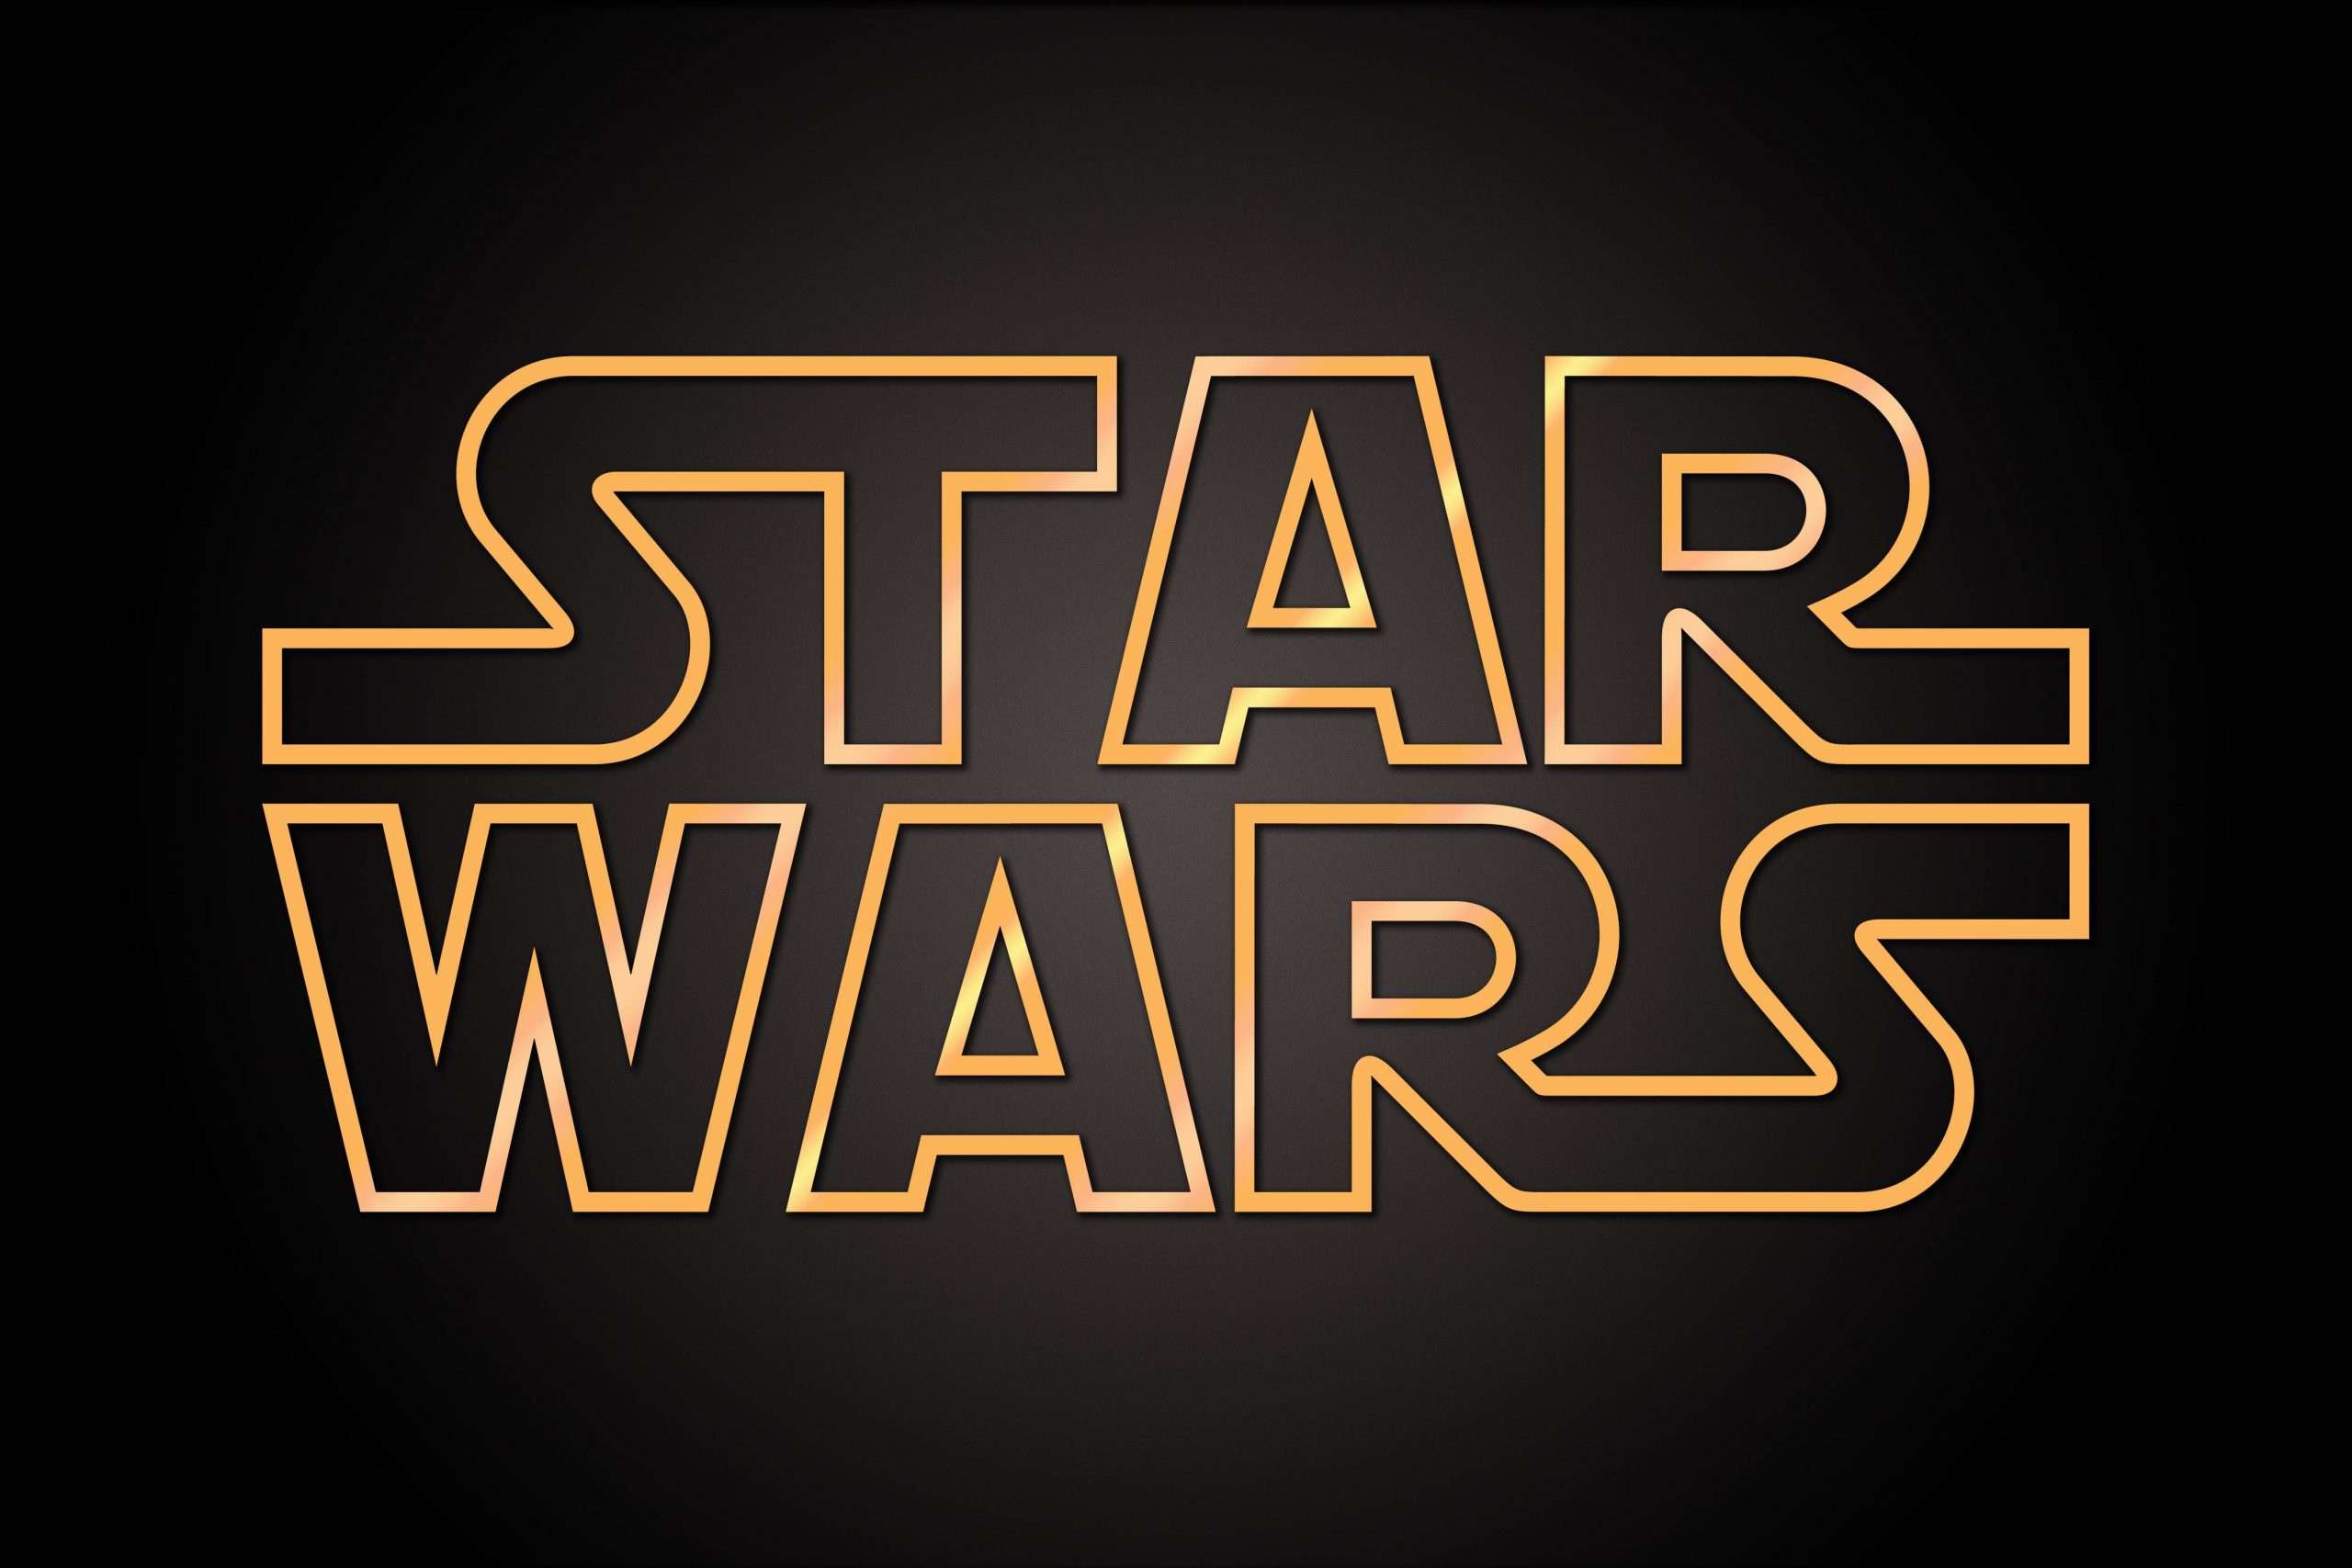 'Star Wars' TV Series Directors & Lead Actor Revealed